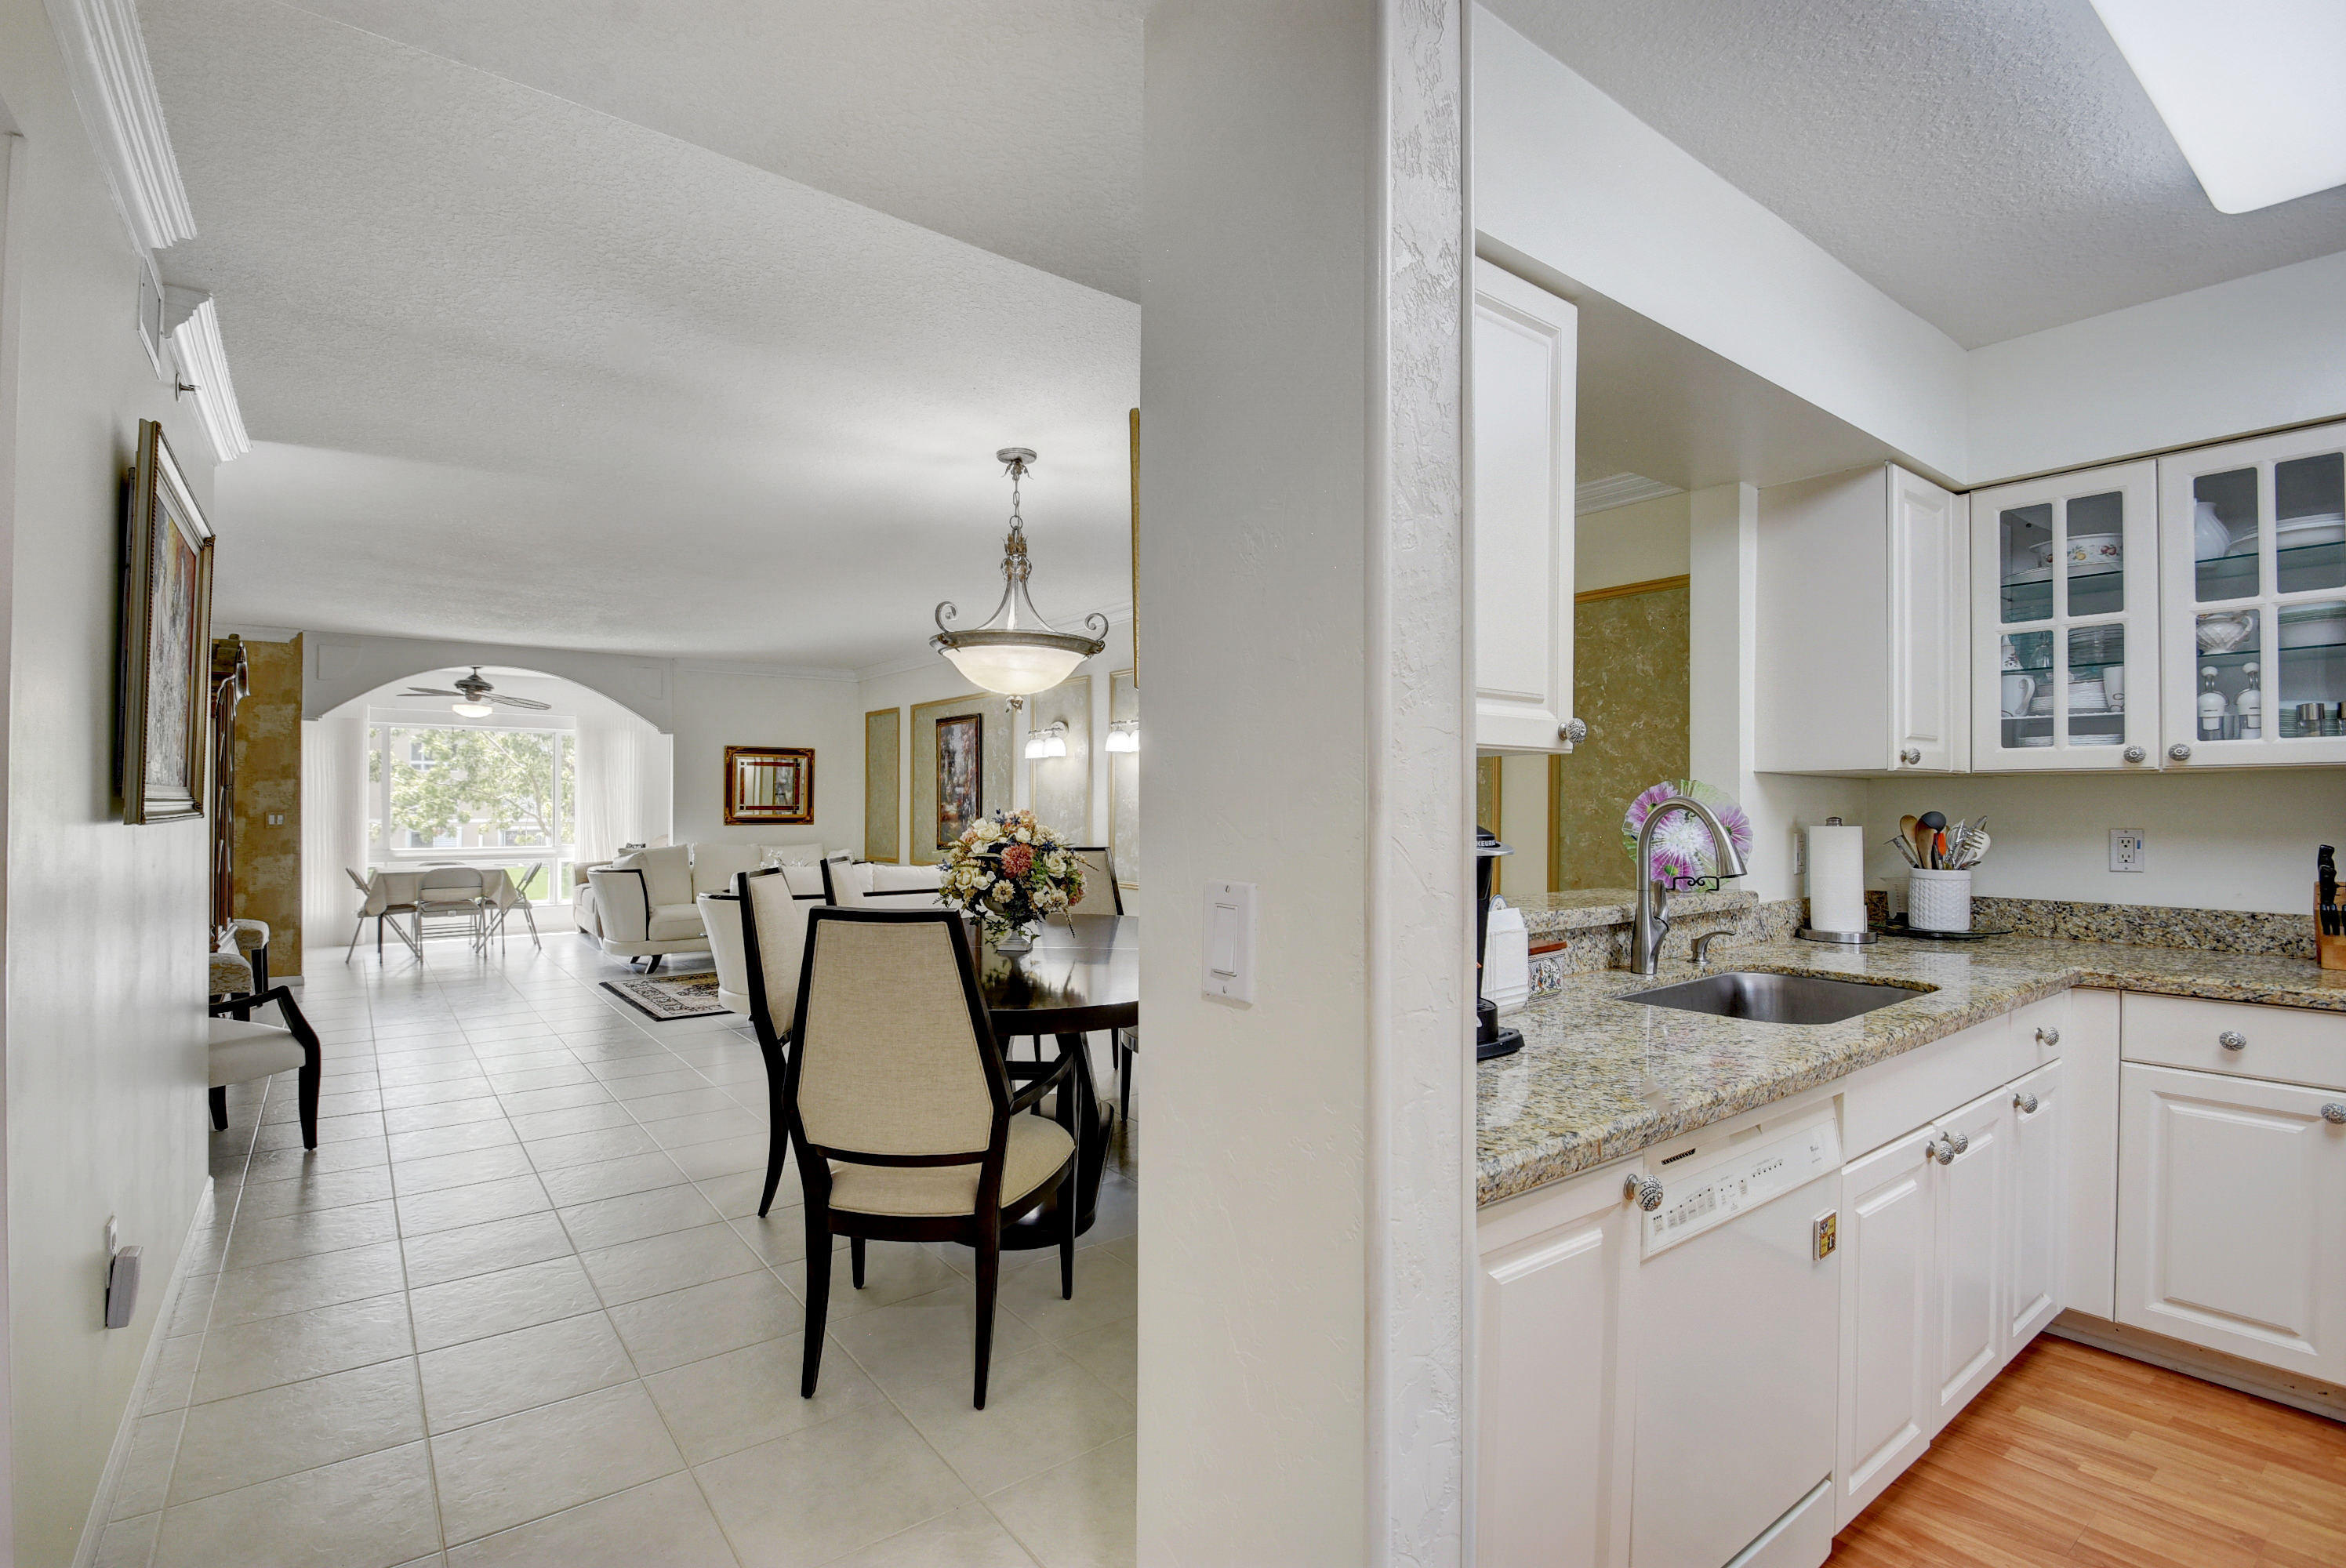 12511  Imperial Isle Drive 206 For Sale 10631308, FL